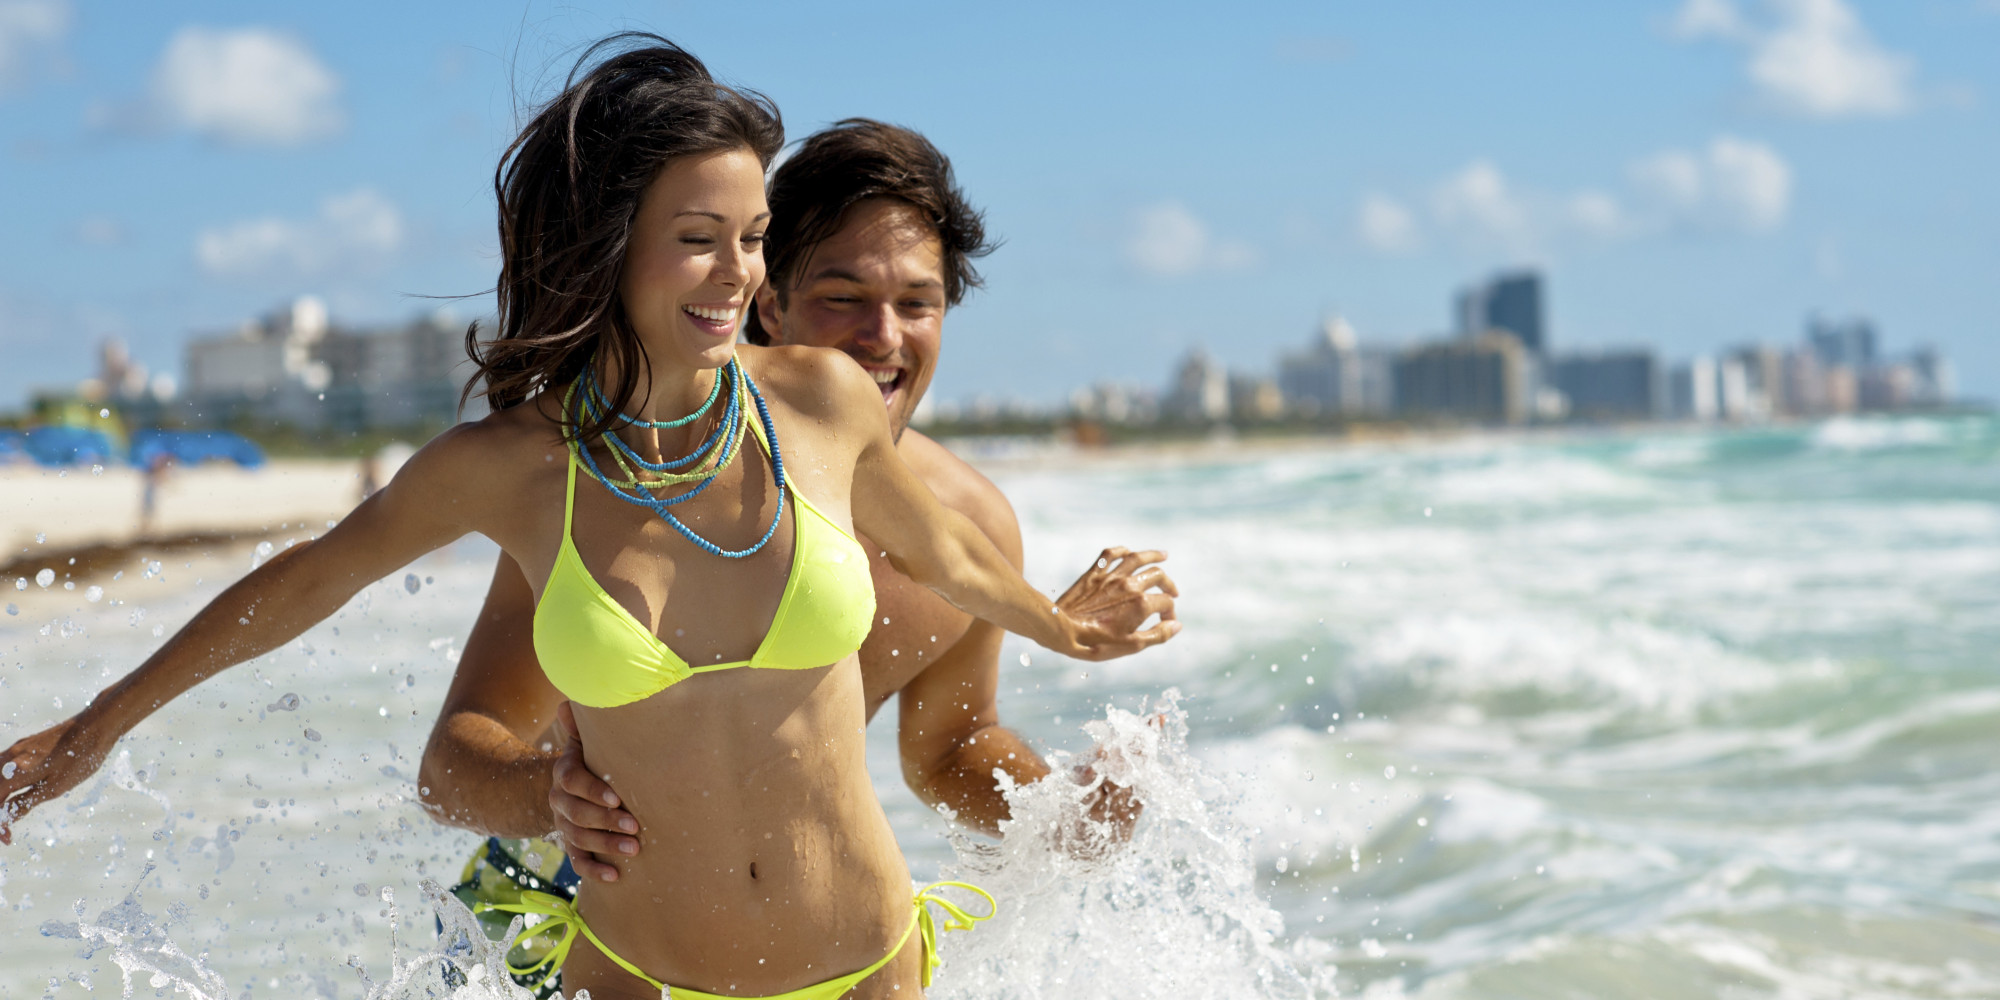 beach lake divorced singles Find meetups in palm beach gardens, florida about singles and meet people in your local community who share your interests.